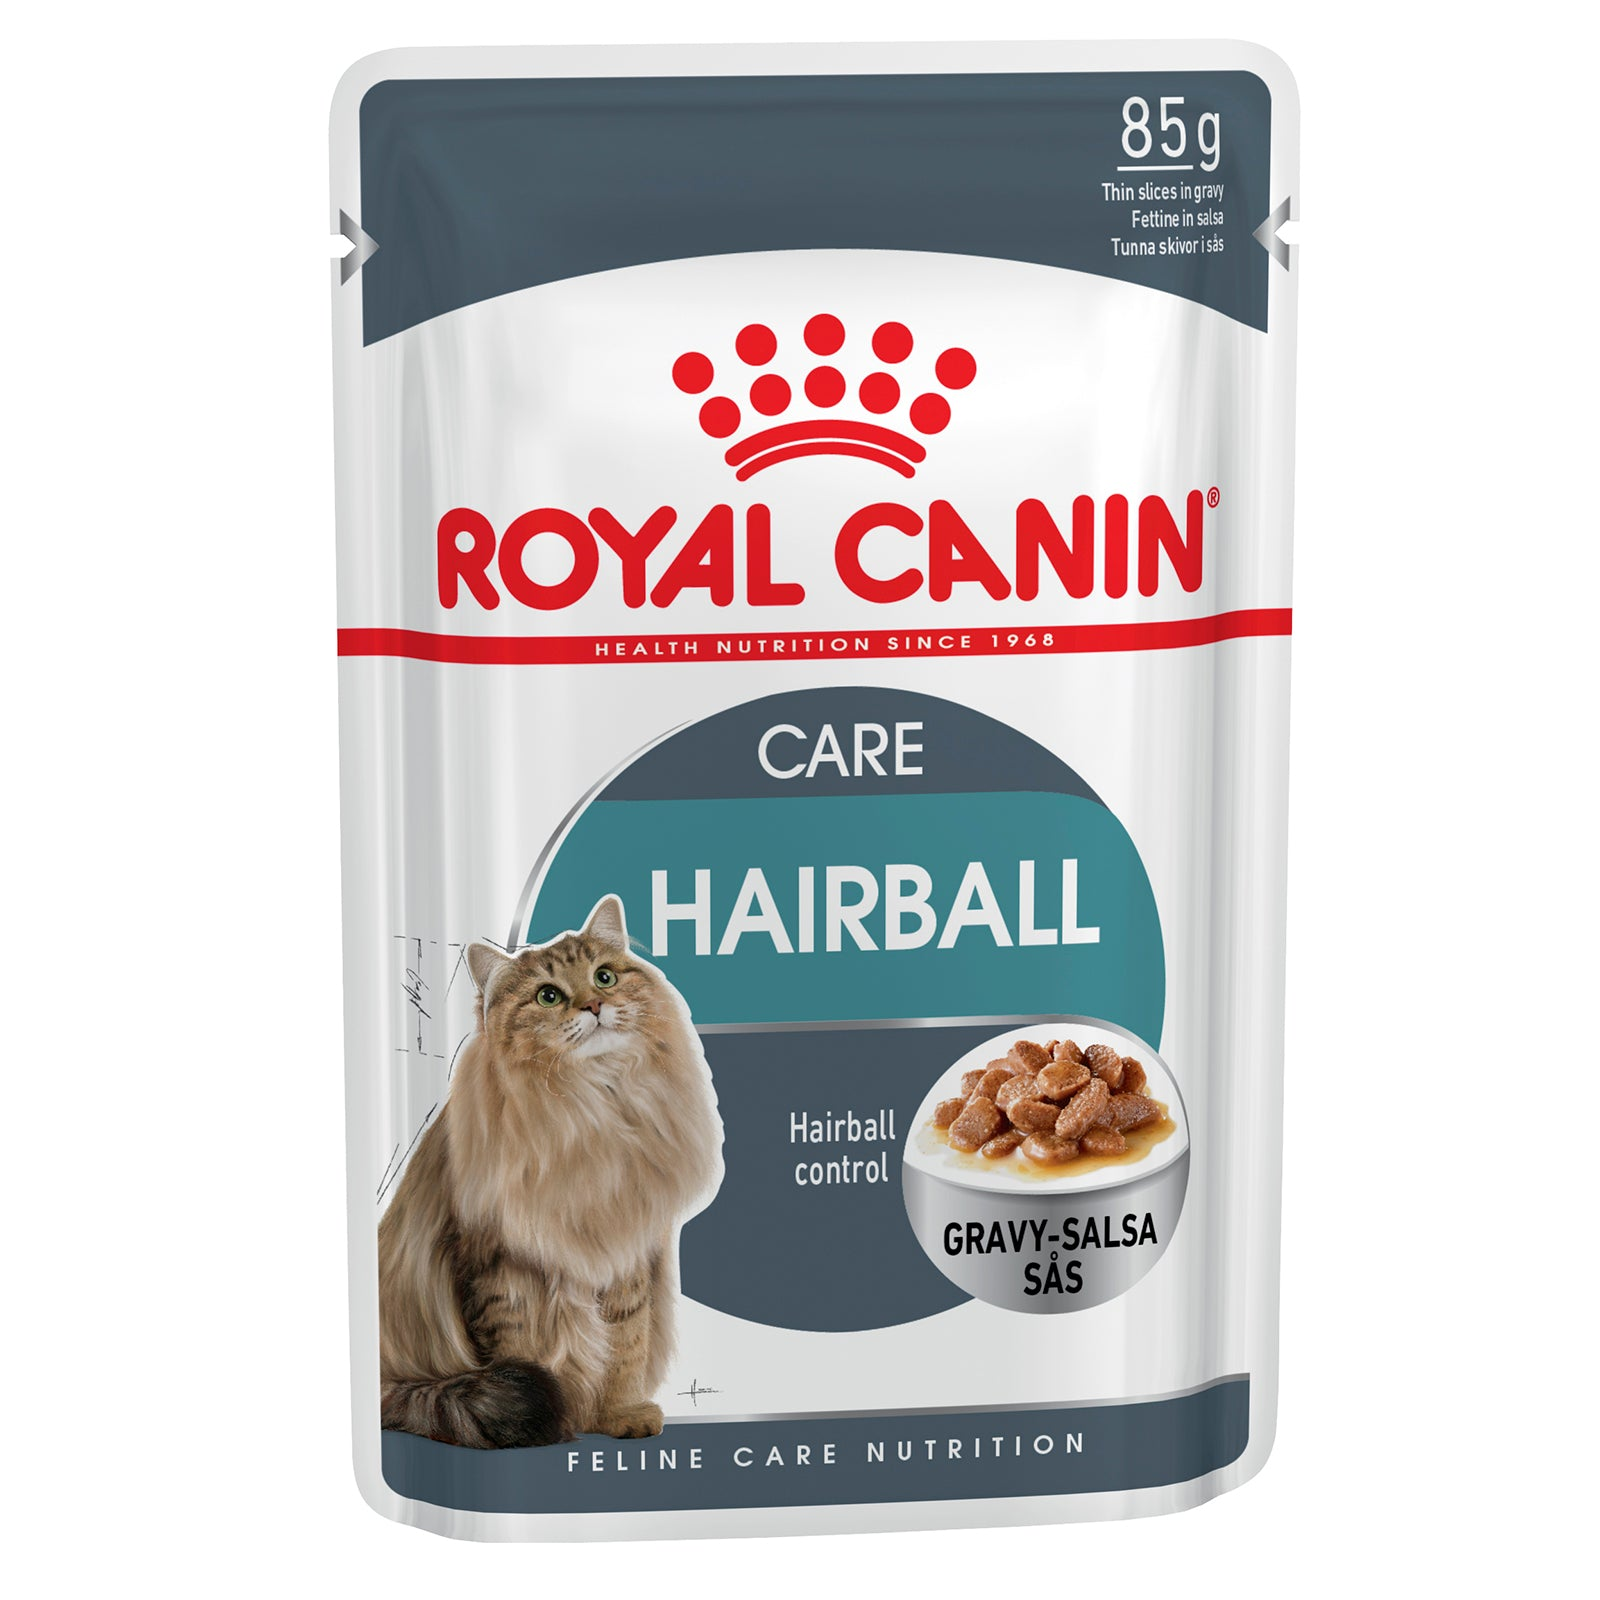 Royal Canin Cat Food Pouch Adult Hairball Care in Gravy